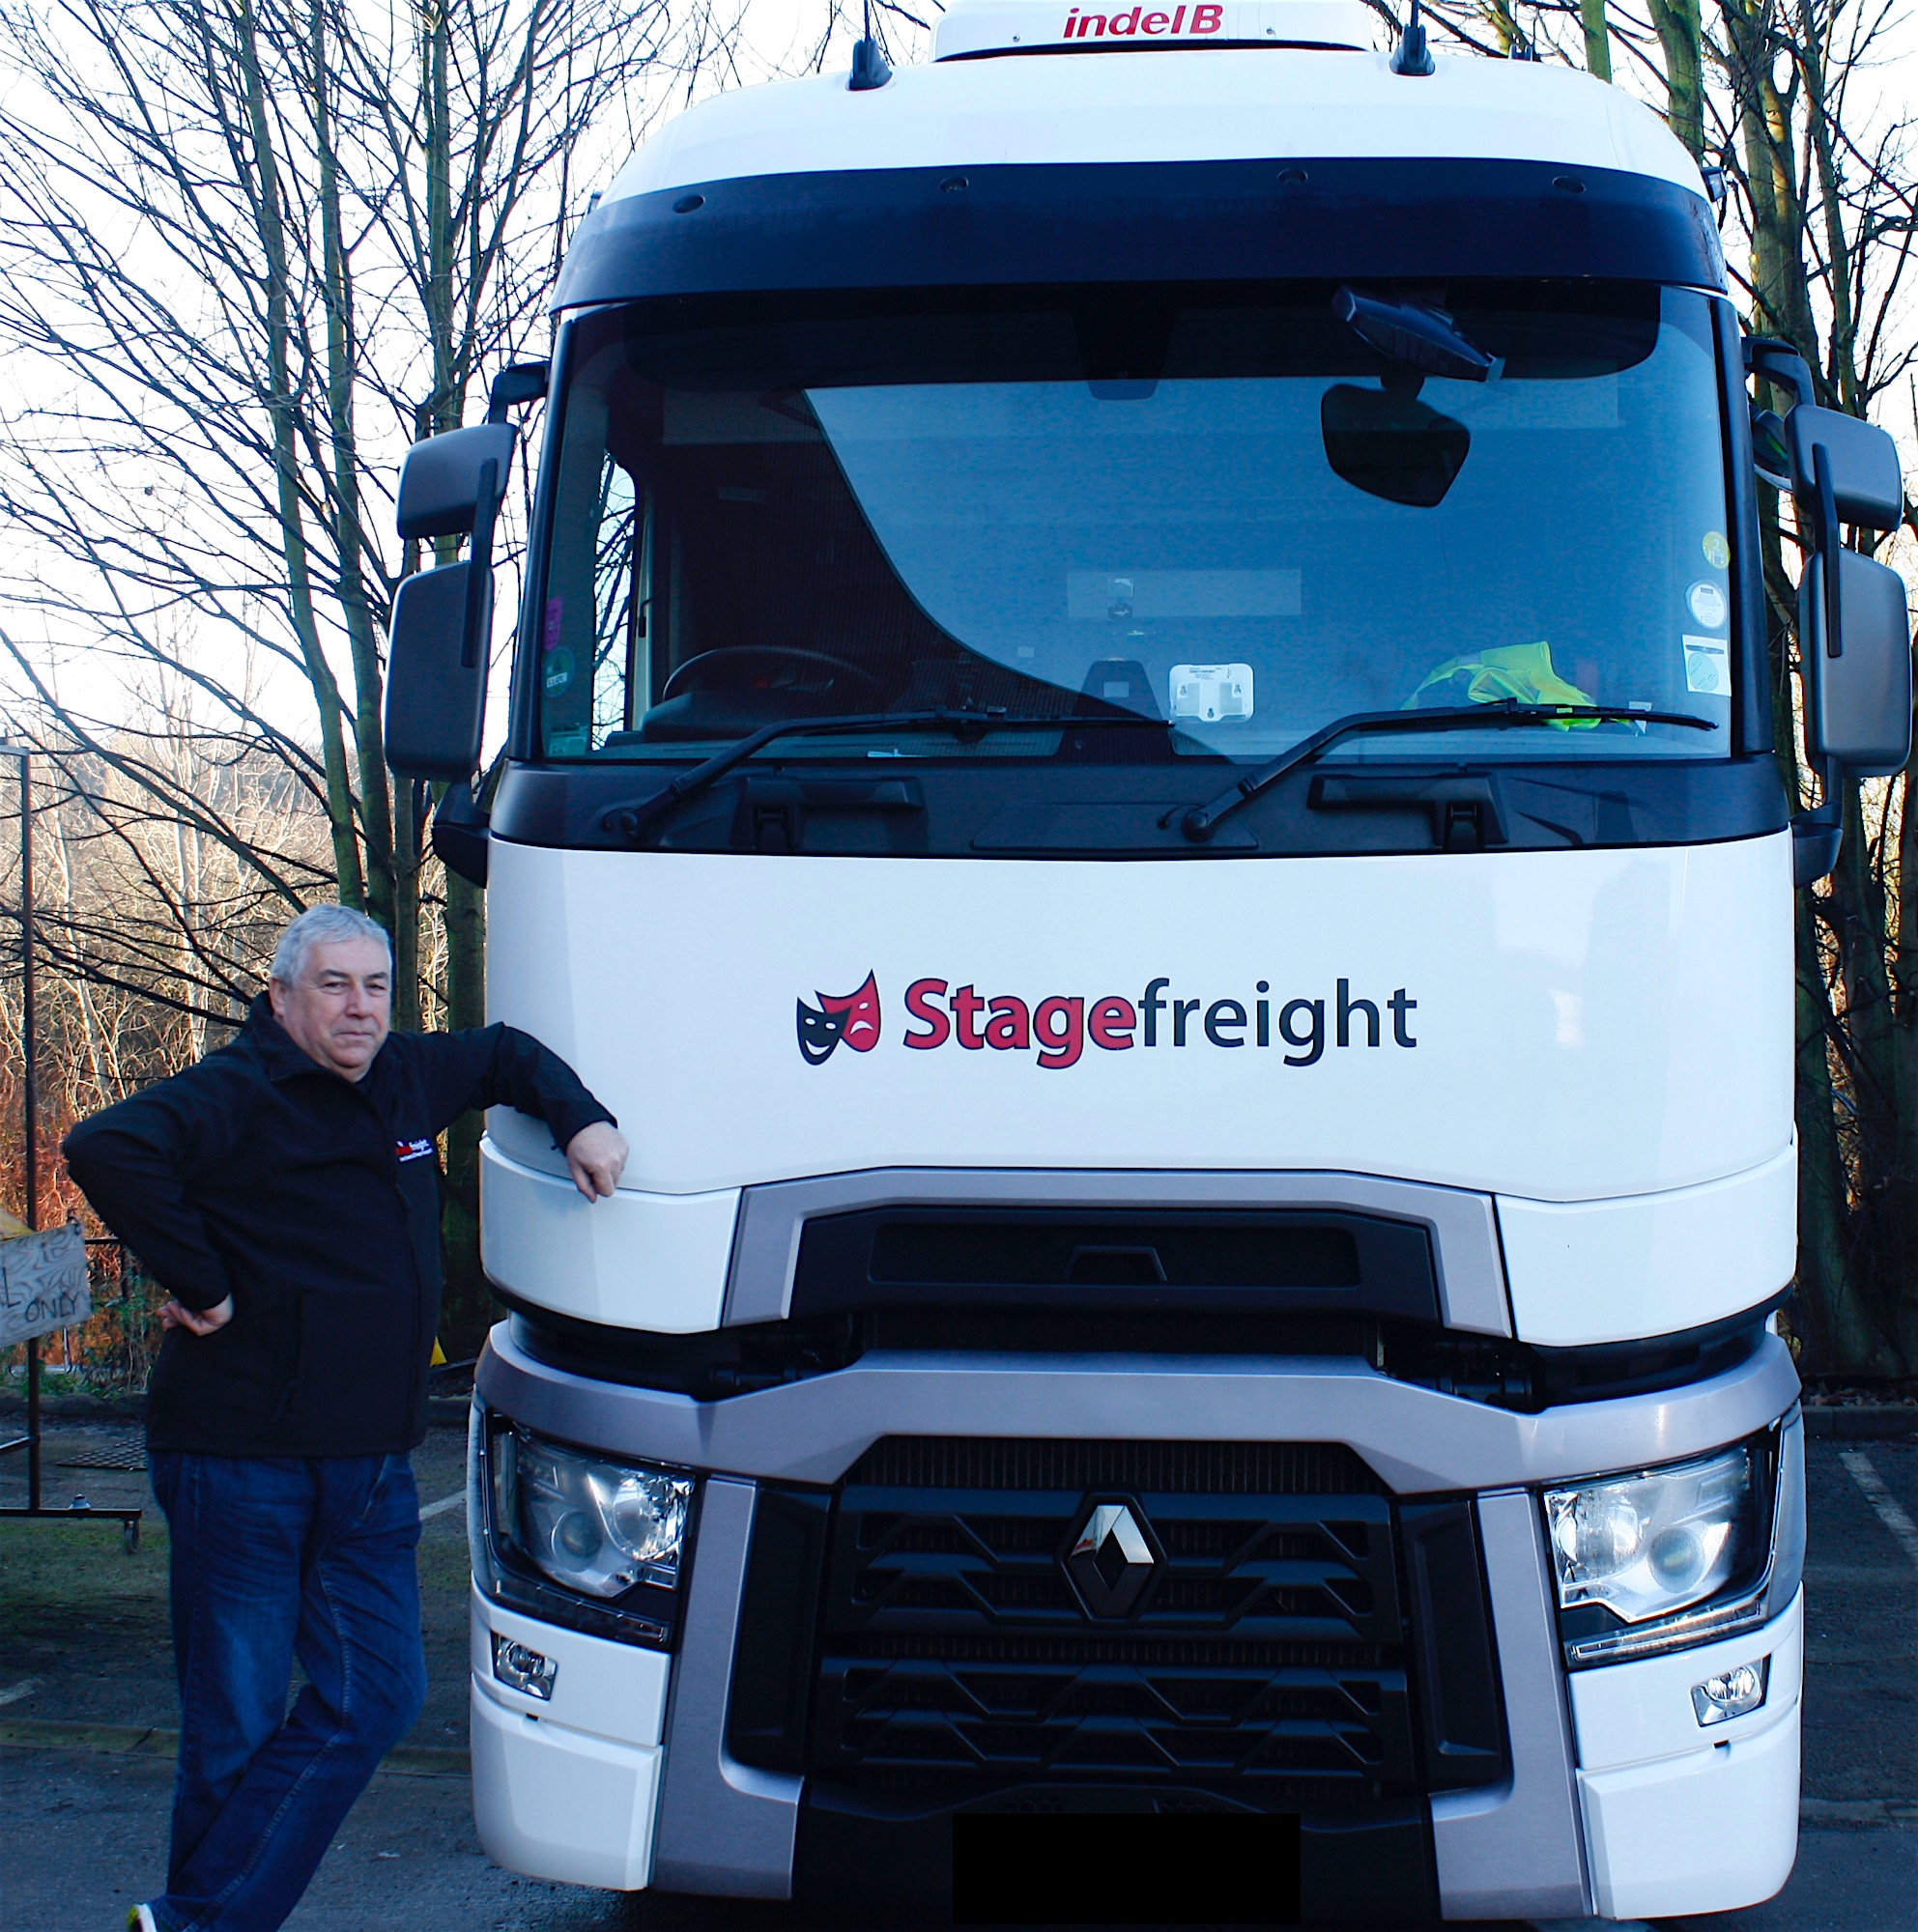 Ross Hemsworth at Stagefreight South Exeter